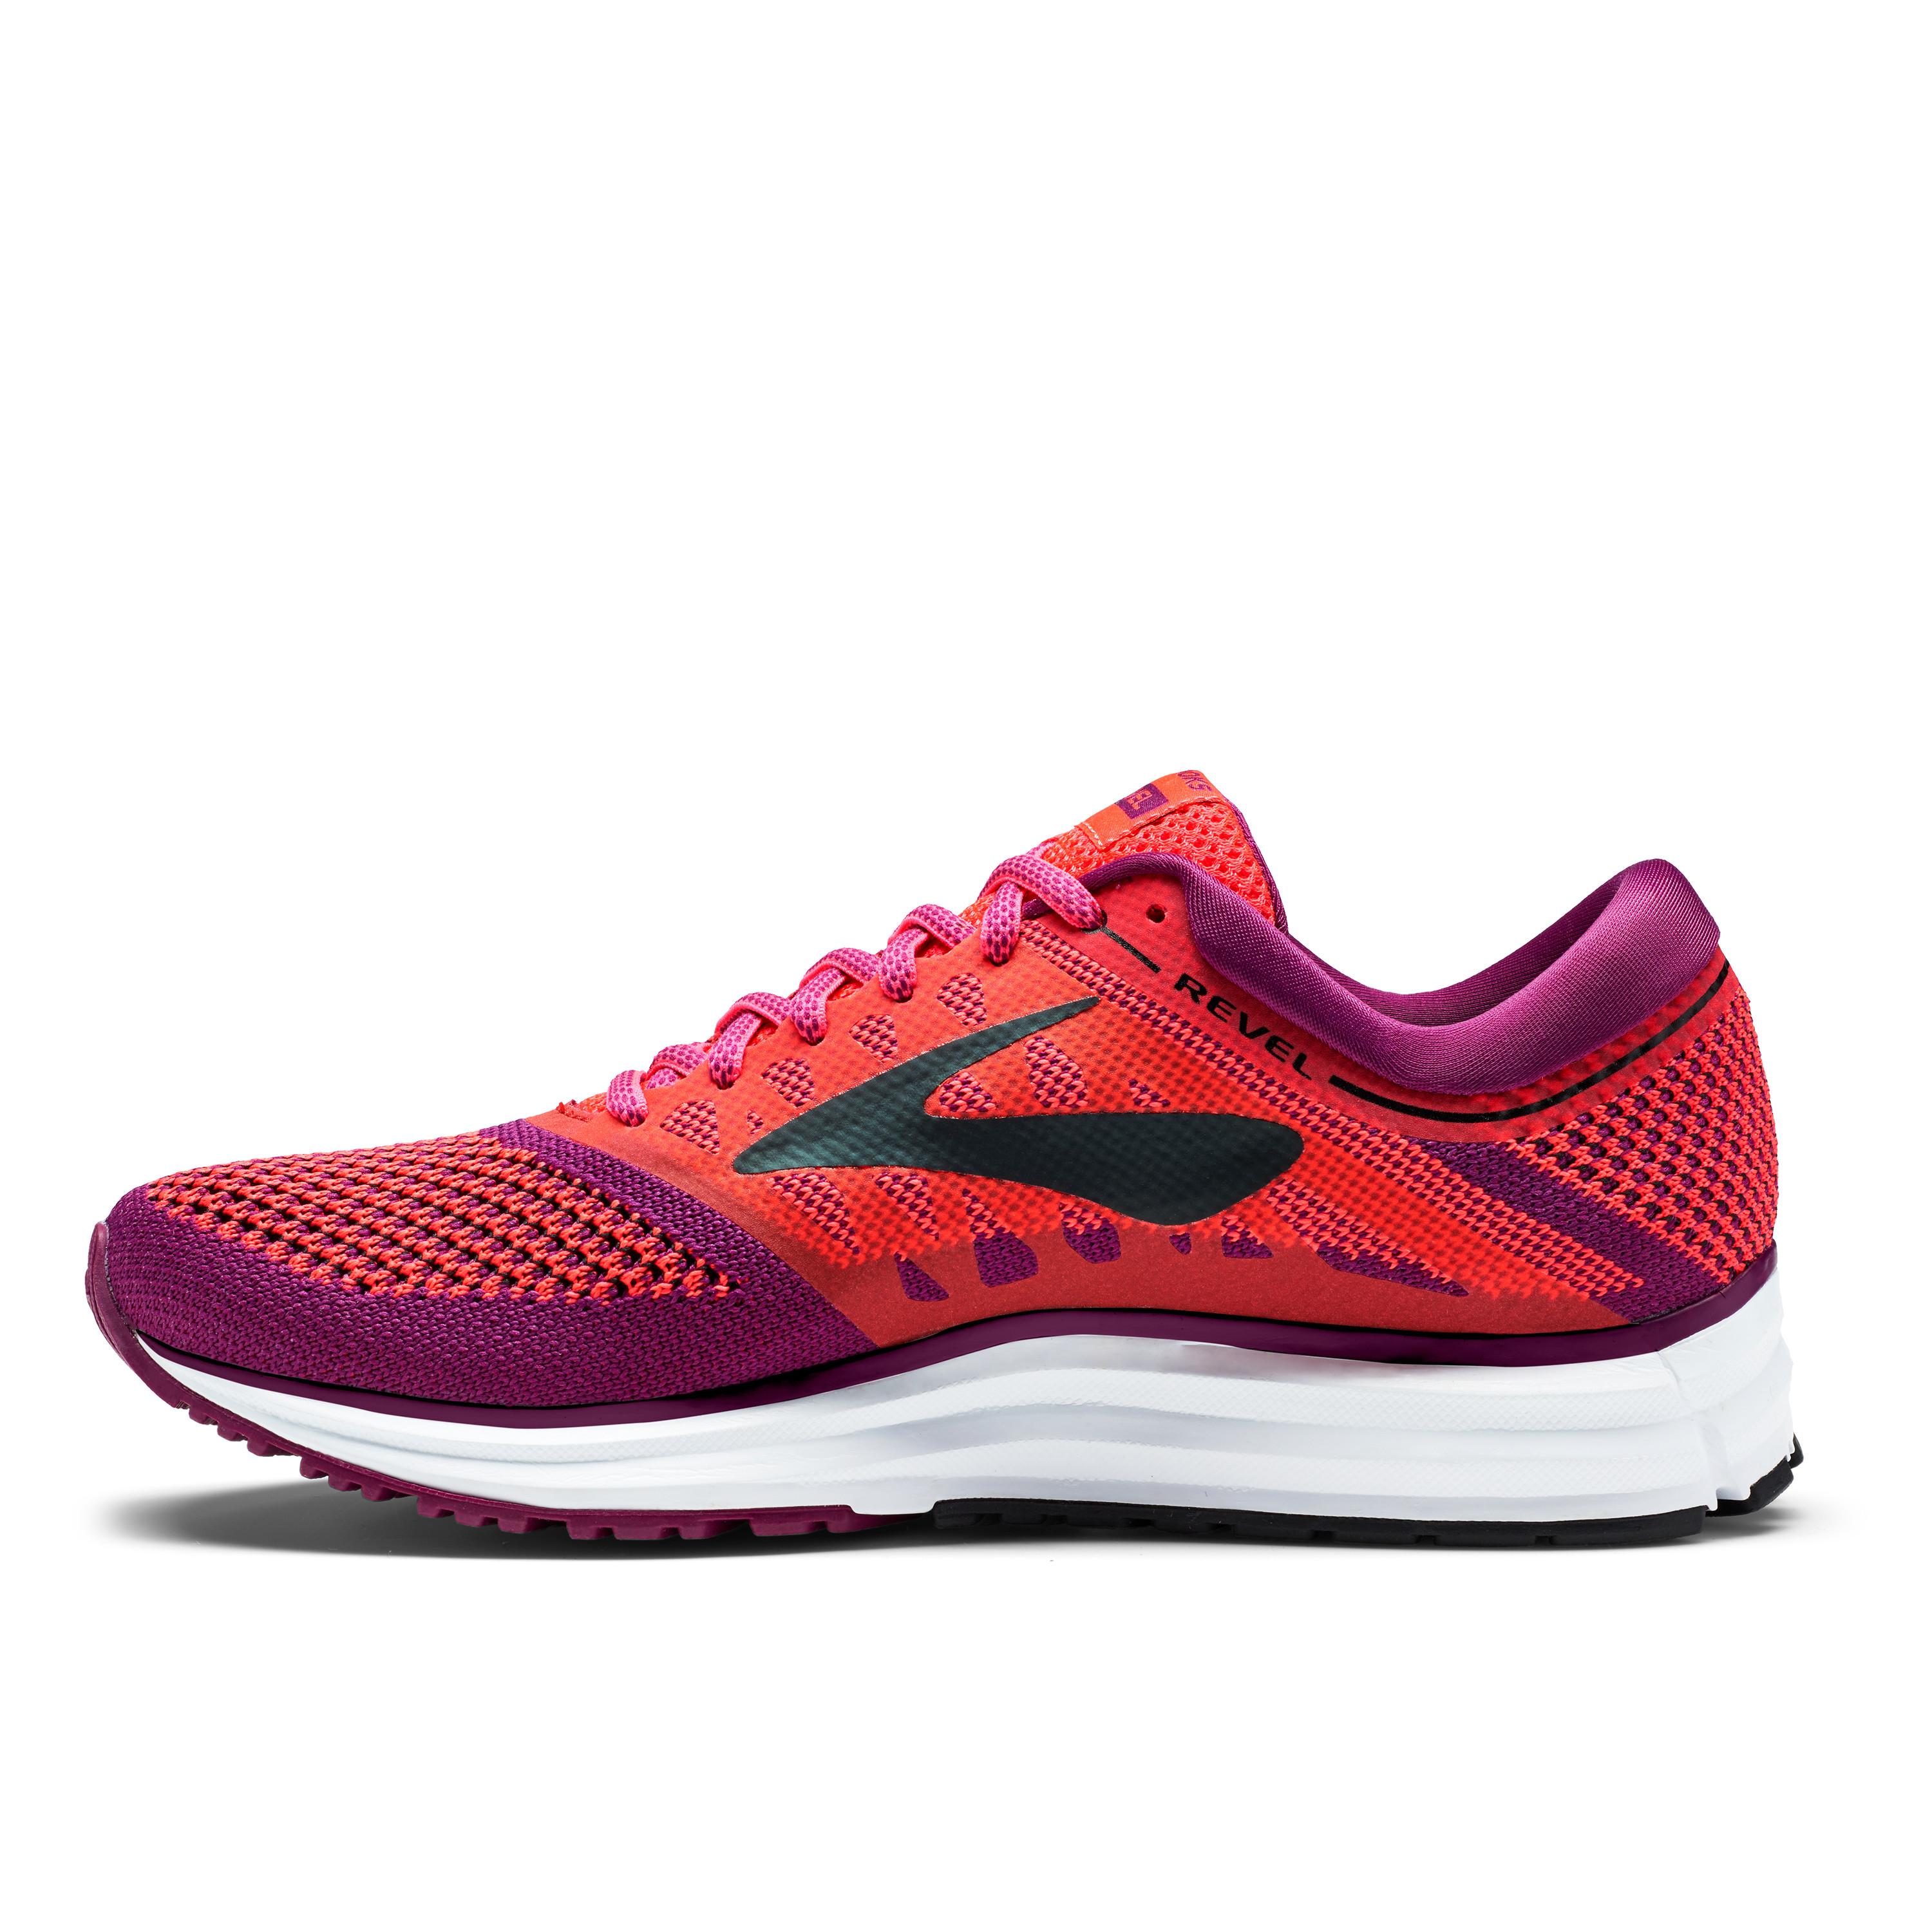 pinterest comfortable nike pin trainer most shoes archives presto comforter running air shoesair